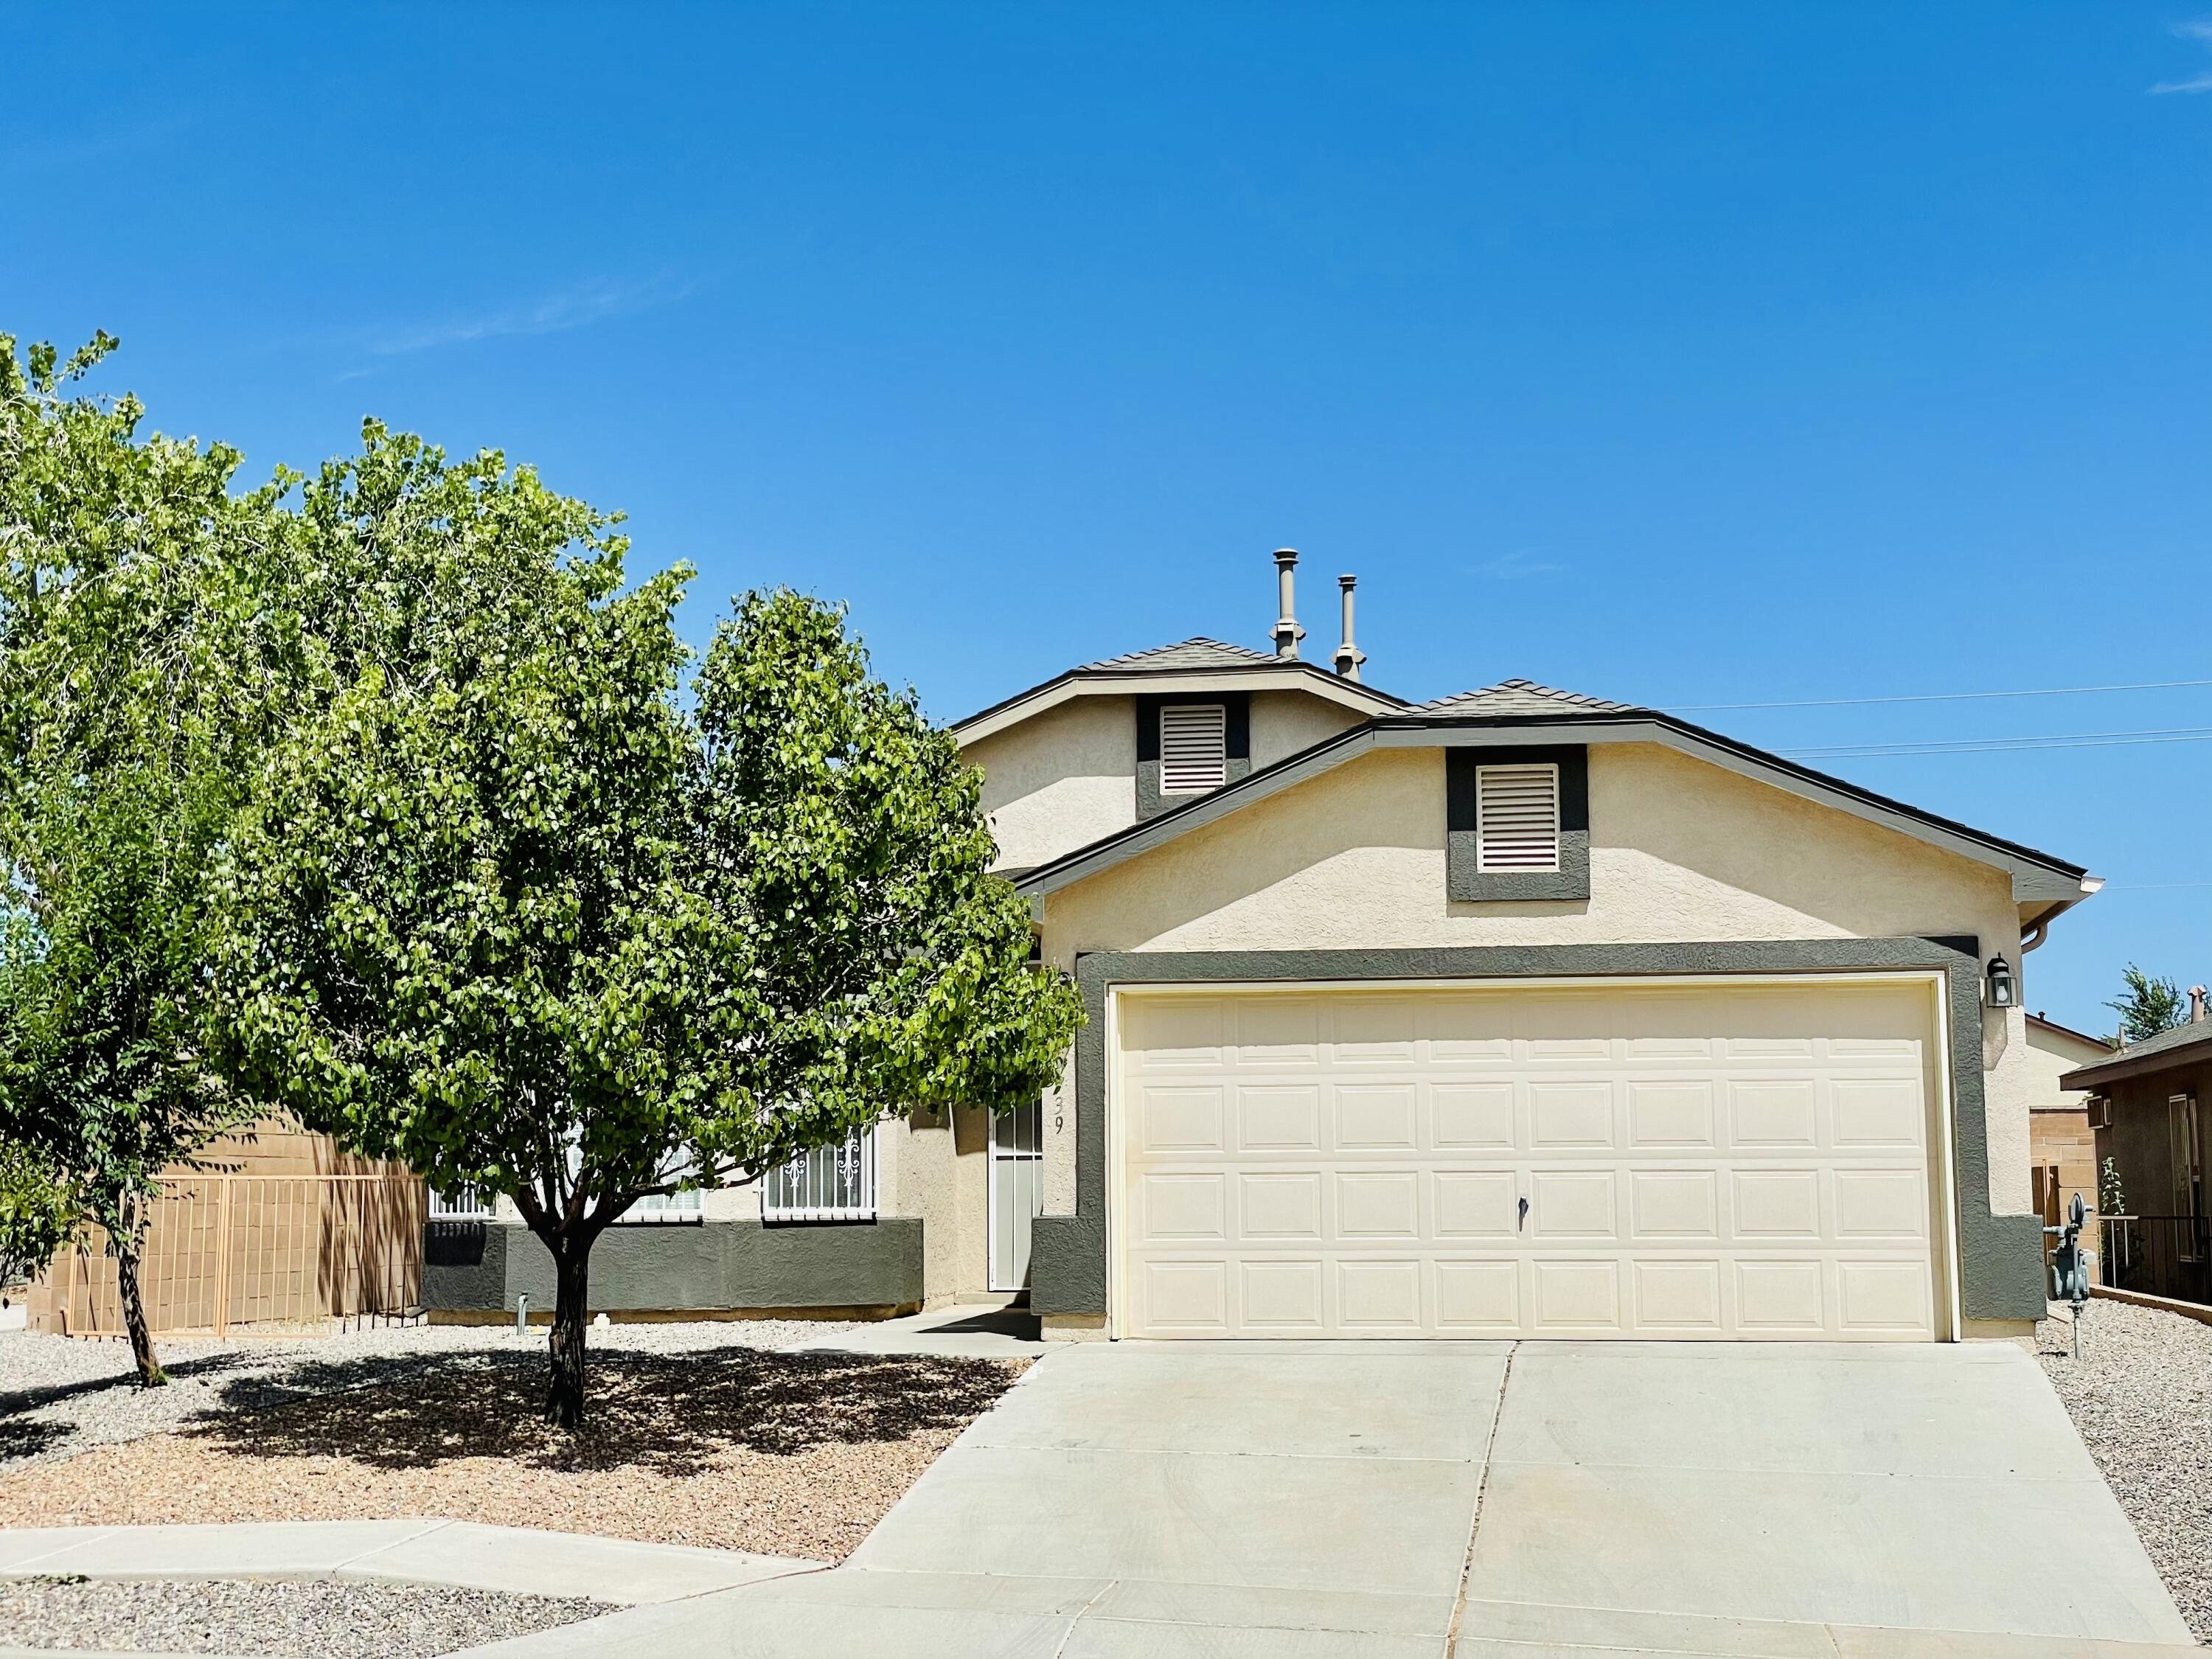 Charming D.R. Horton home located on large corner lot. Nice open floor plan. 3 bedrooms. 2 full bathrooms. Large backyard, nice blank canvas for new owners.